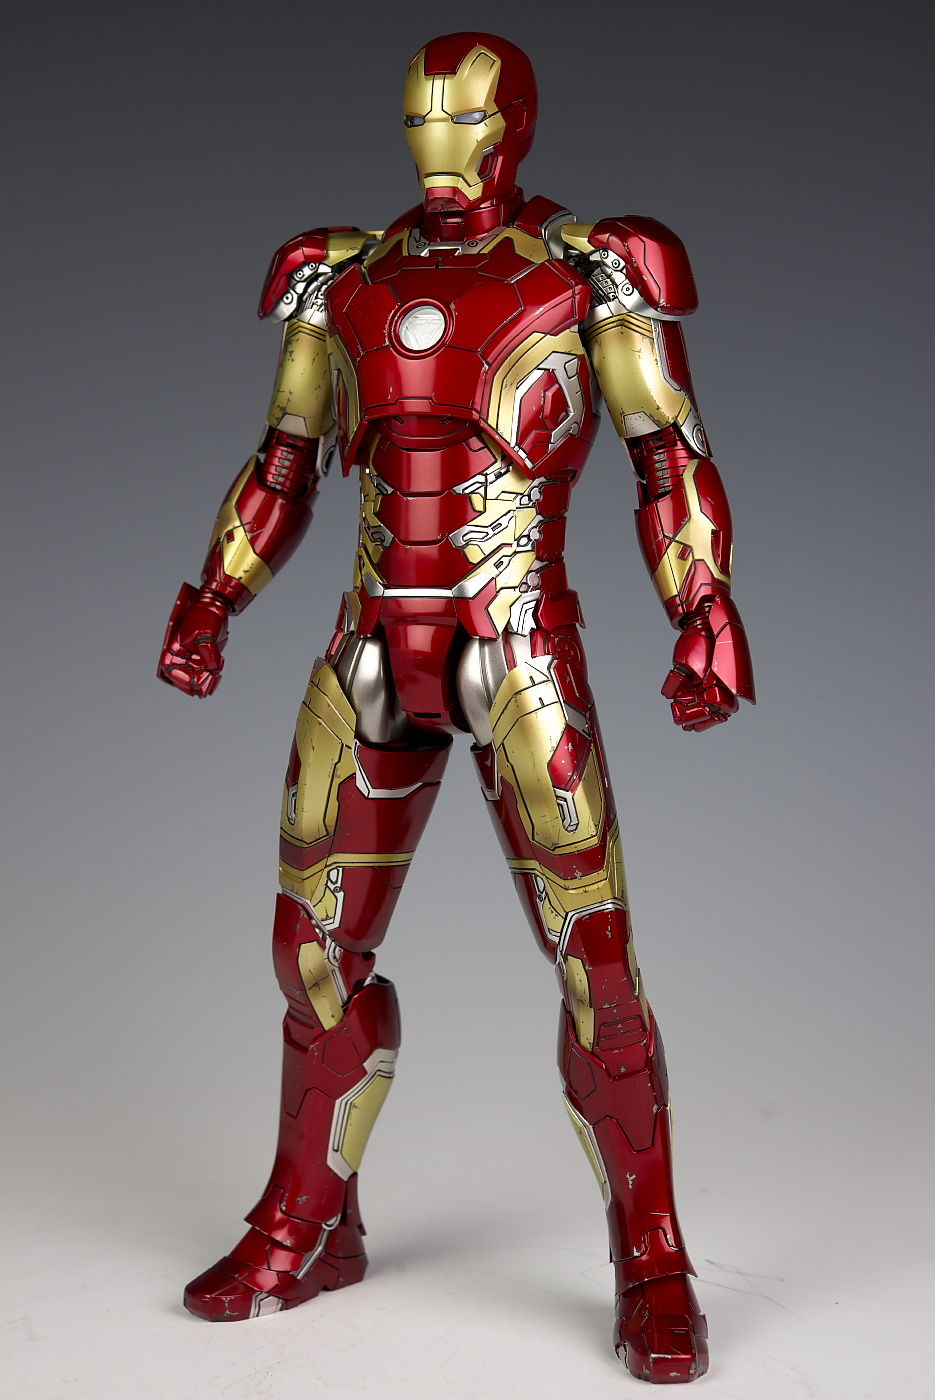 Avengers: Age Of Ultron] Hot Toys Movie Masterpiece DIECAST